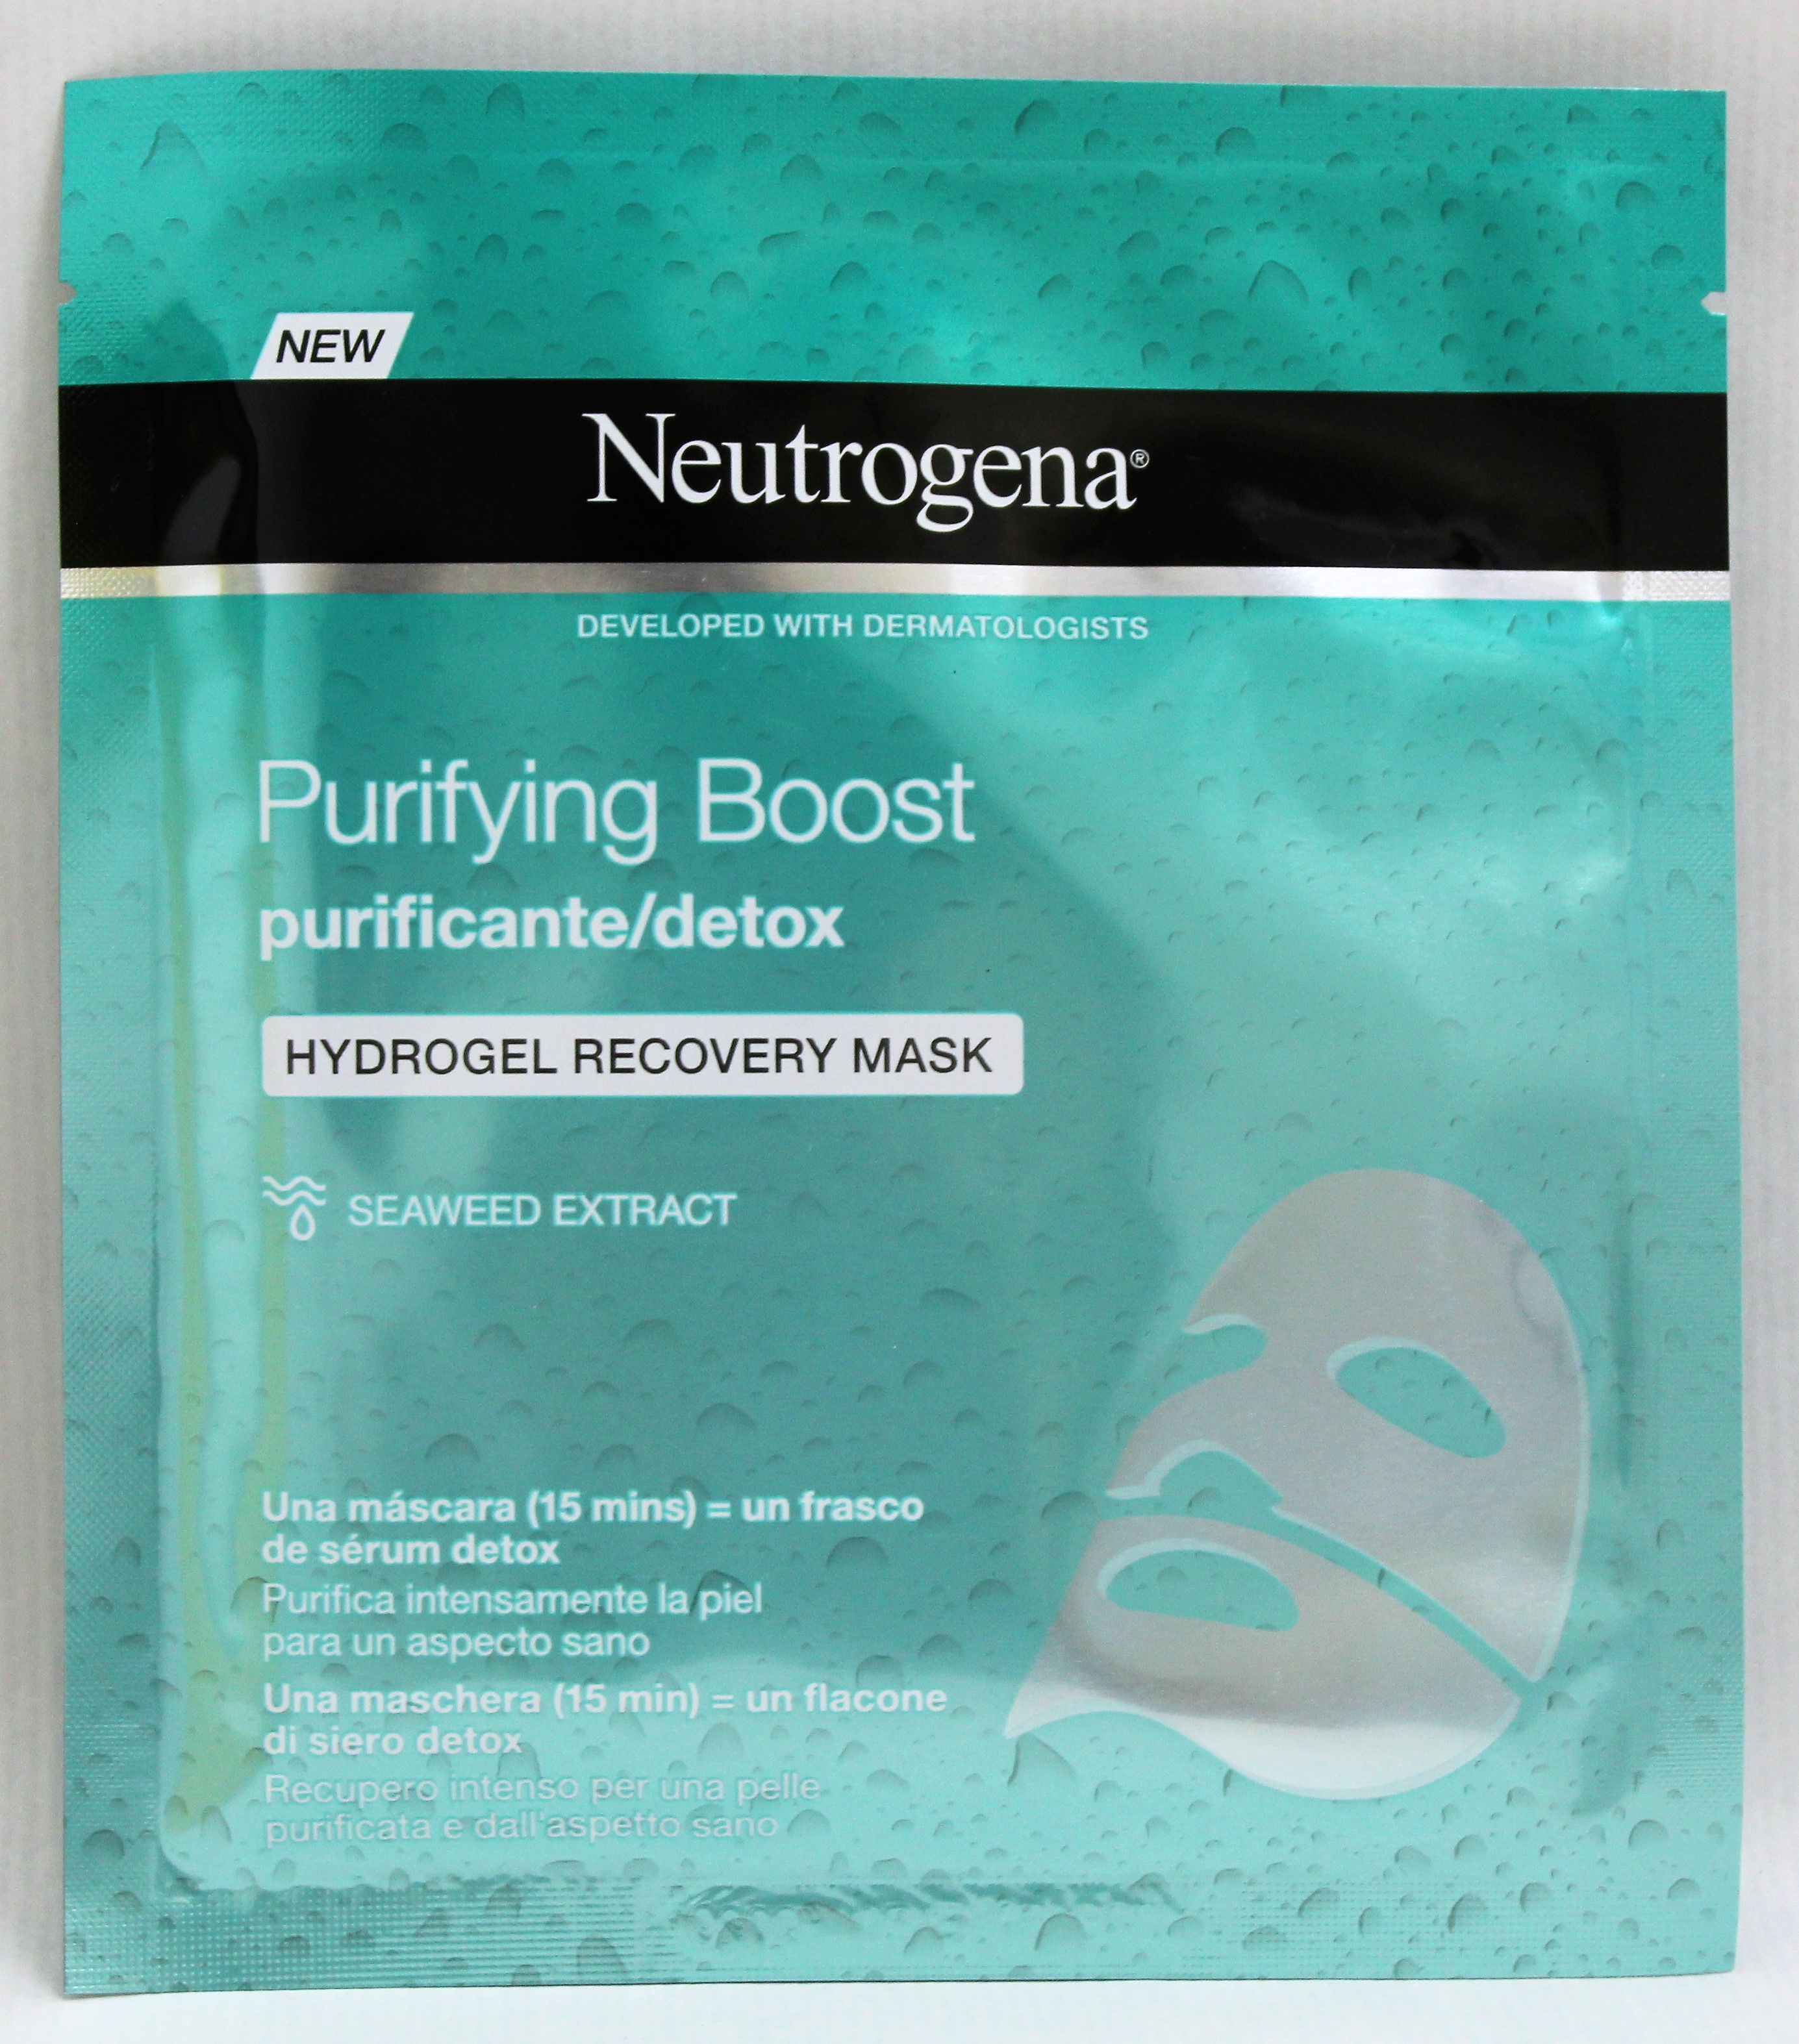 NEUTROGENA PURIFYING BOOST MASK HYDROGEL RECOVER